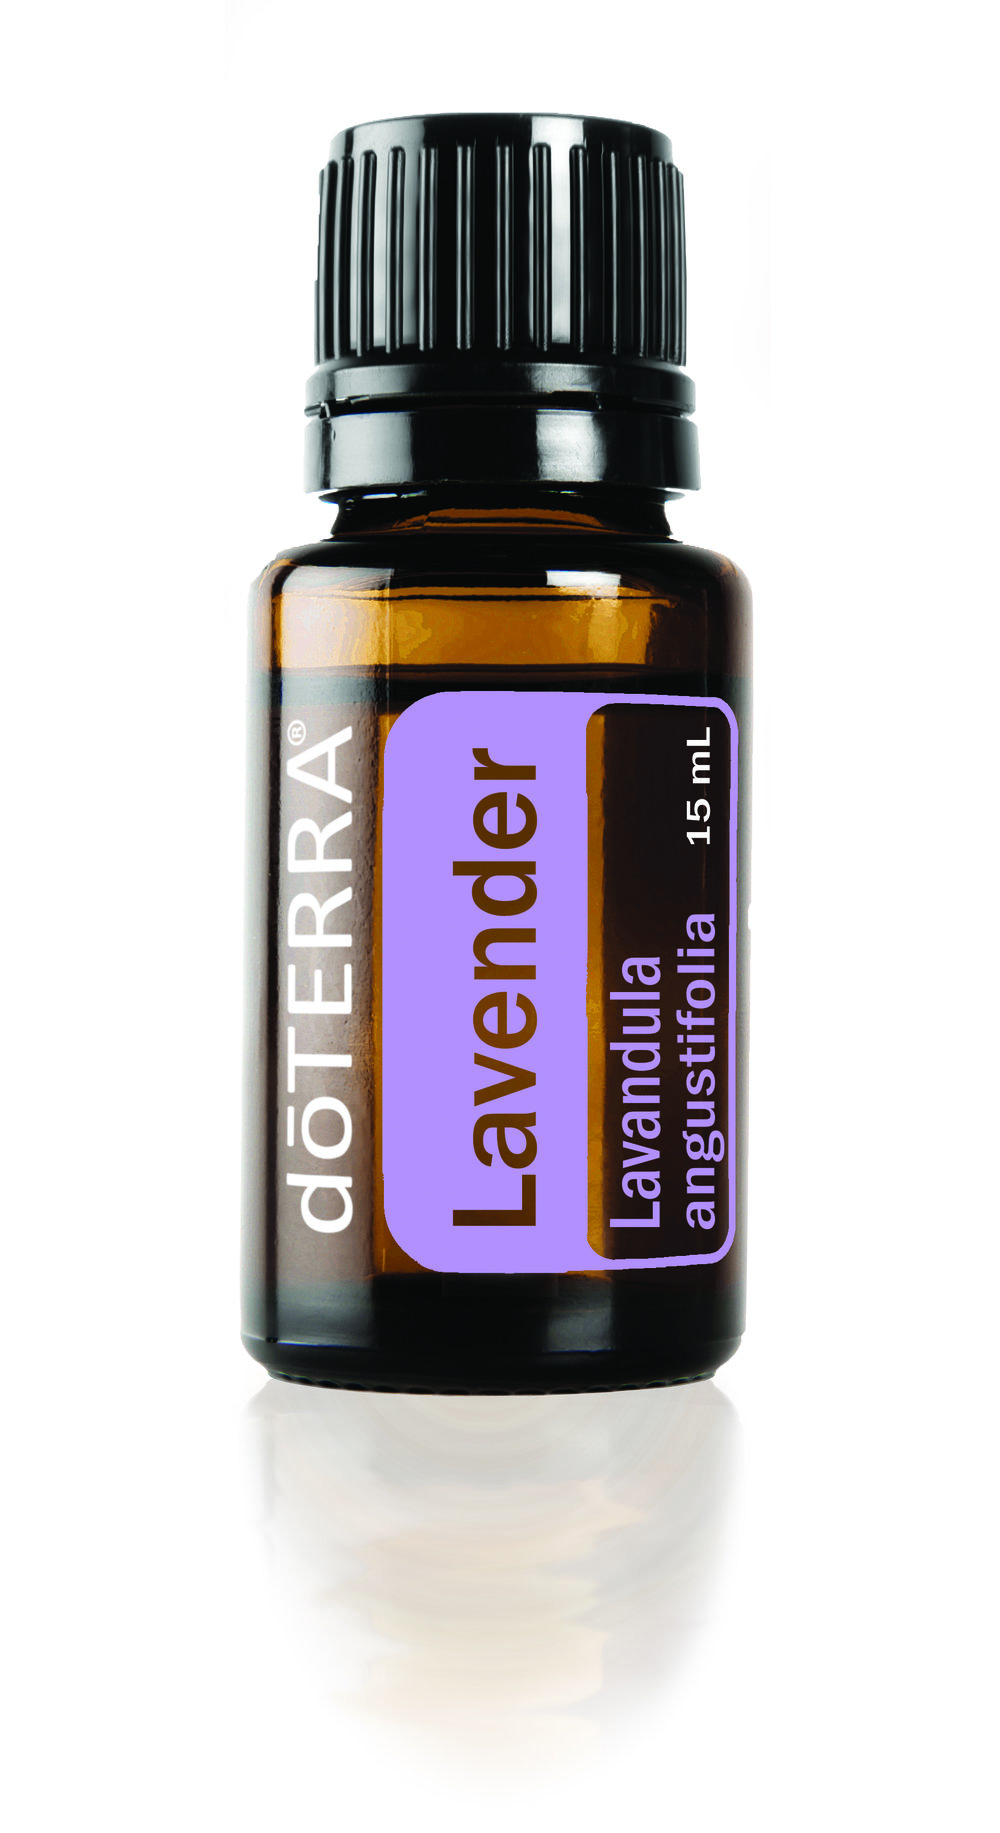 2. CALM  - Lavender Produces calming, soothing and relaxing benefits to relieve anxiety & tension